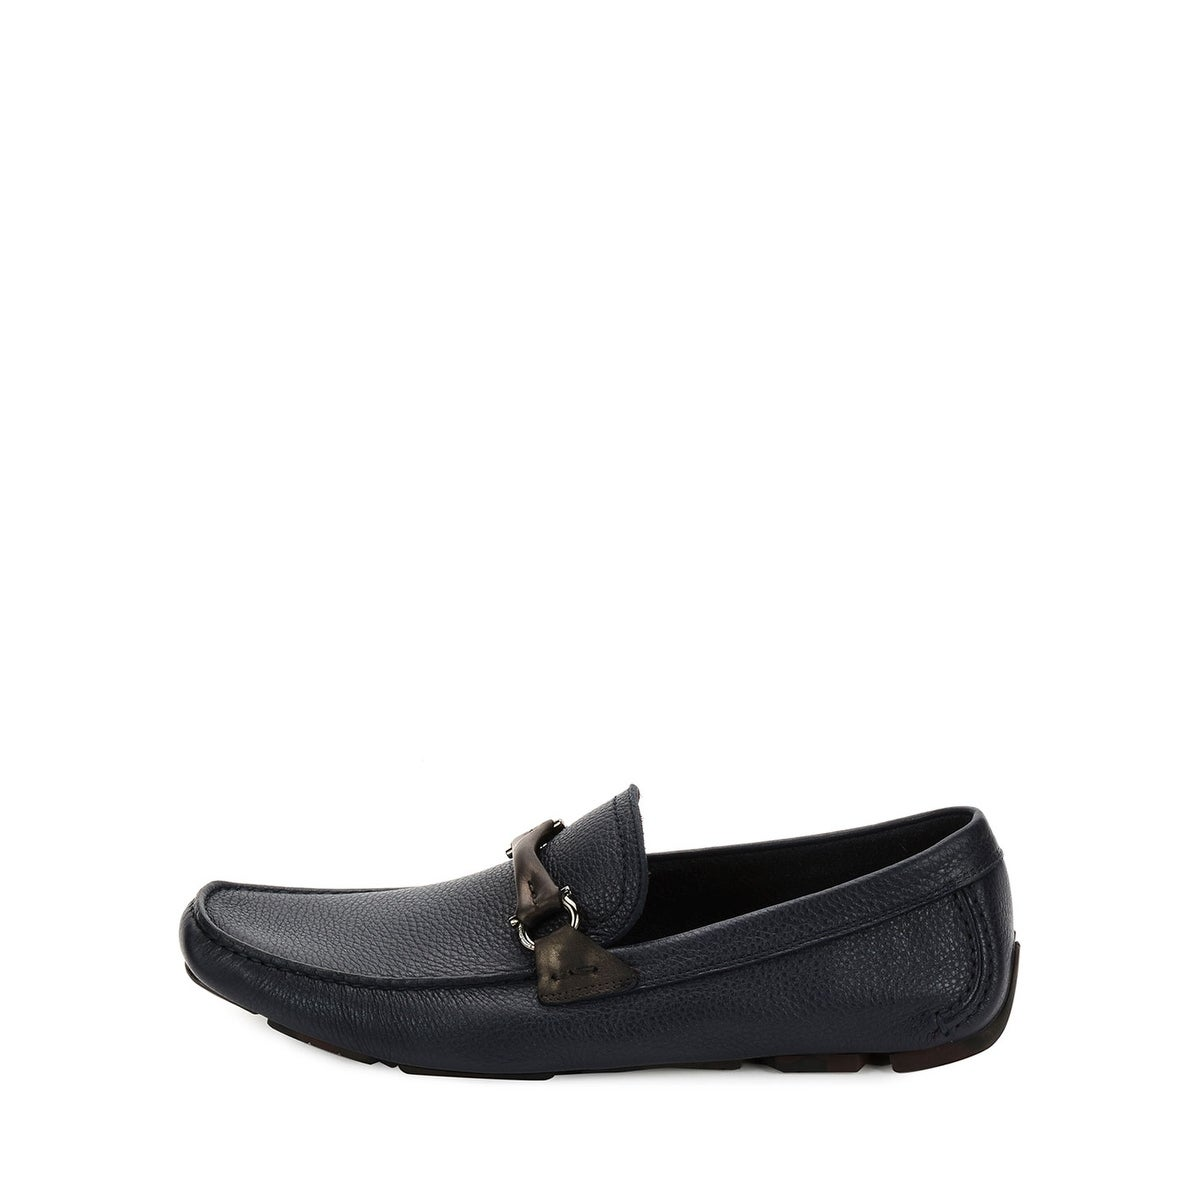 ab3cad7a929 Shop Salvatore Ferragamo Mens Granprix Leather Square Toe Penny Loafer -  Free Shipping Today - Overstock - 25980553